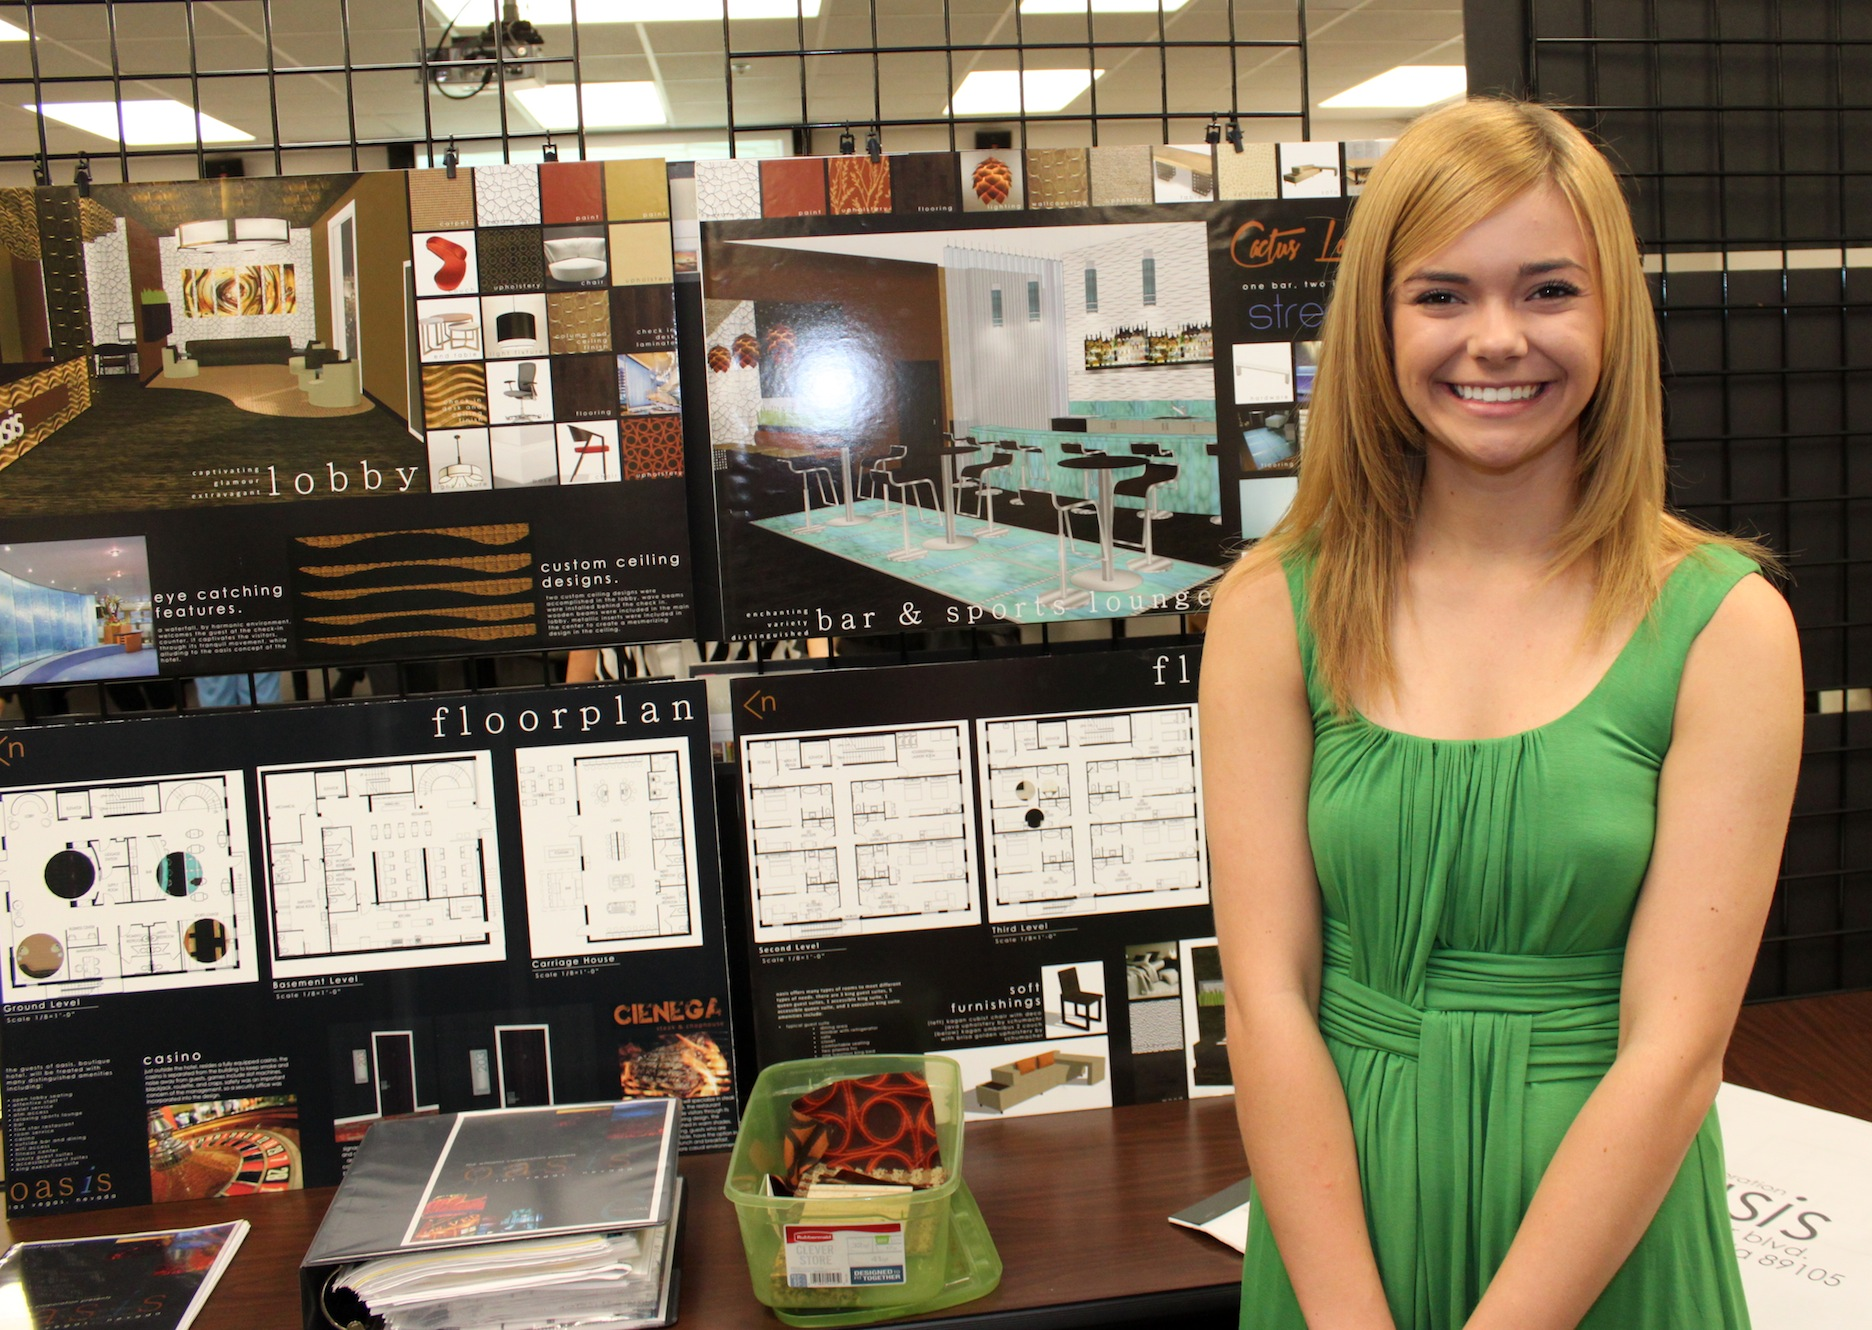 capstone design project What is the mechanical engineering senior capstone design experience the senior capstone design experience aims to bridge the gap between classroom and industry by requiring students to use their knowledge and skills to complete an engineering design project equivalent to the assignments they will soon receive.